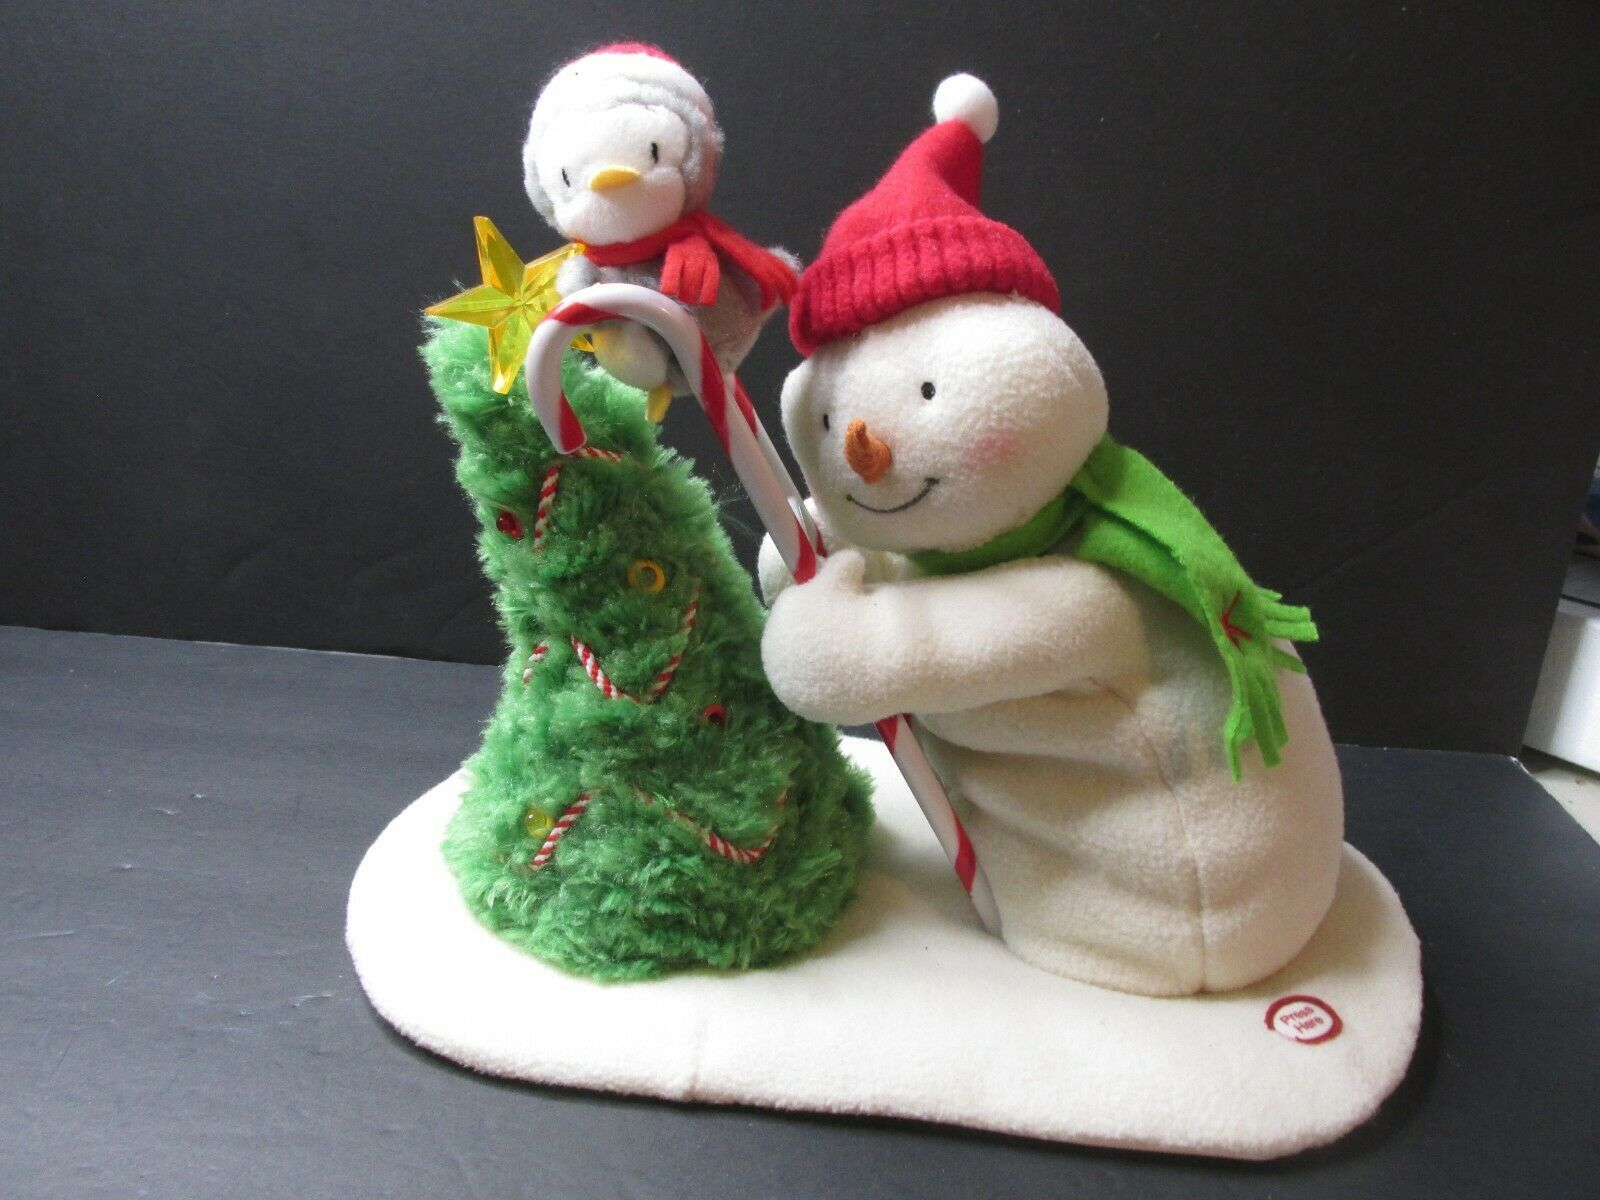 Primary image for L1 Hallmark Jingle Pals Snowman Penguin Trimming The Tree Ladder Plush Stuffed